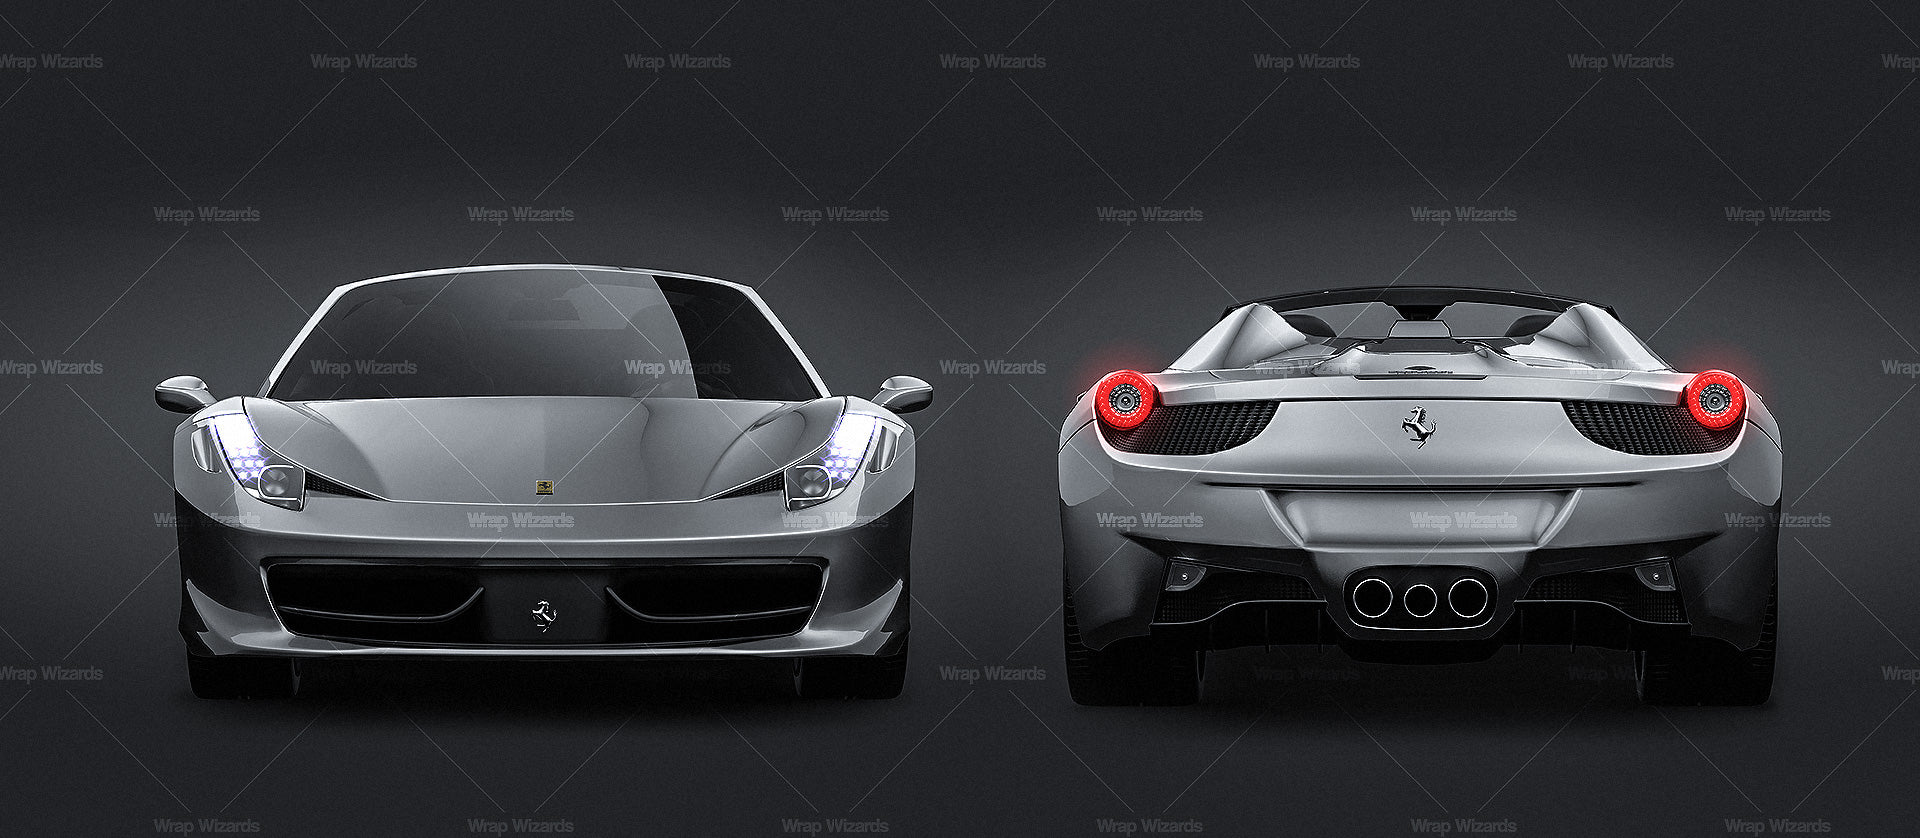 Ferrari 458 Spider 2012 glossy finish - all sides Car Mockup Template.psd